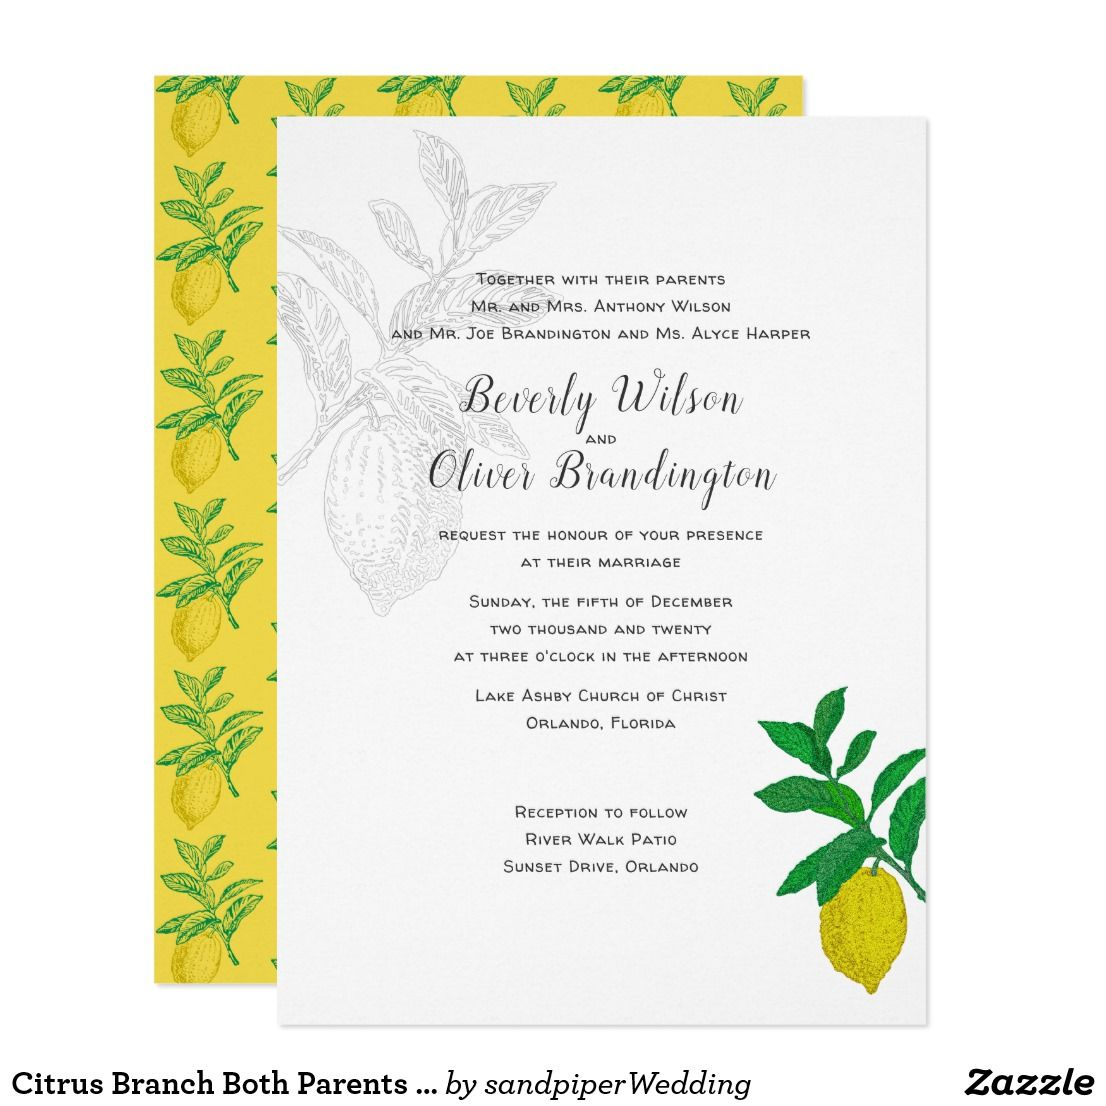 Citrus Branch Both Parents Wedding Invitation | Pinterest | Lemon ...